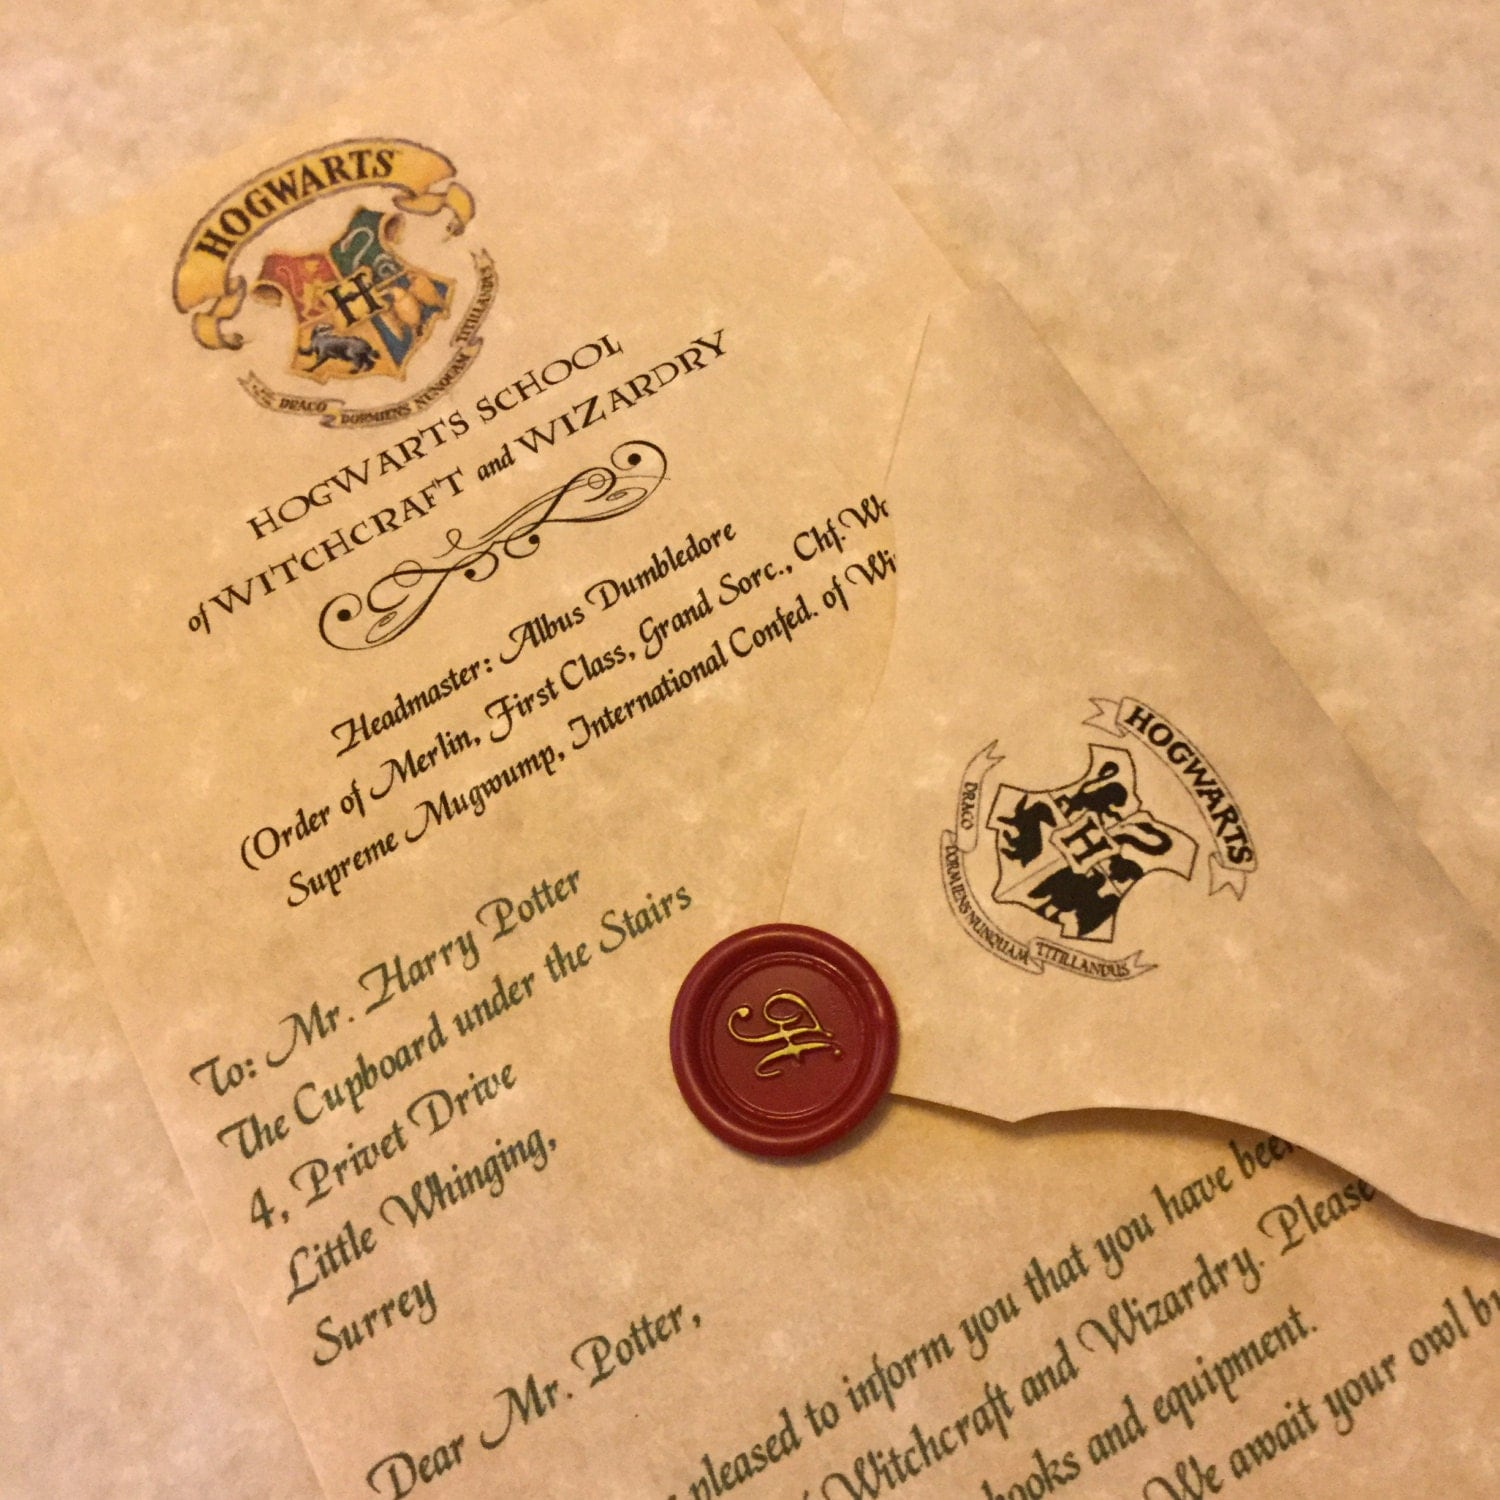 personalized hogwarts acceptance letter personalized harry 128270zoom